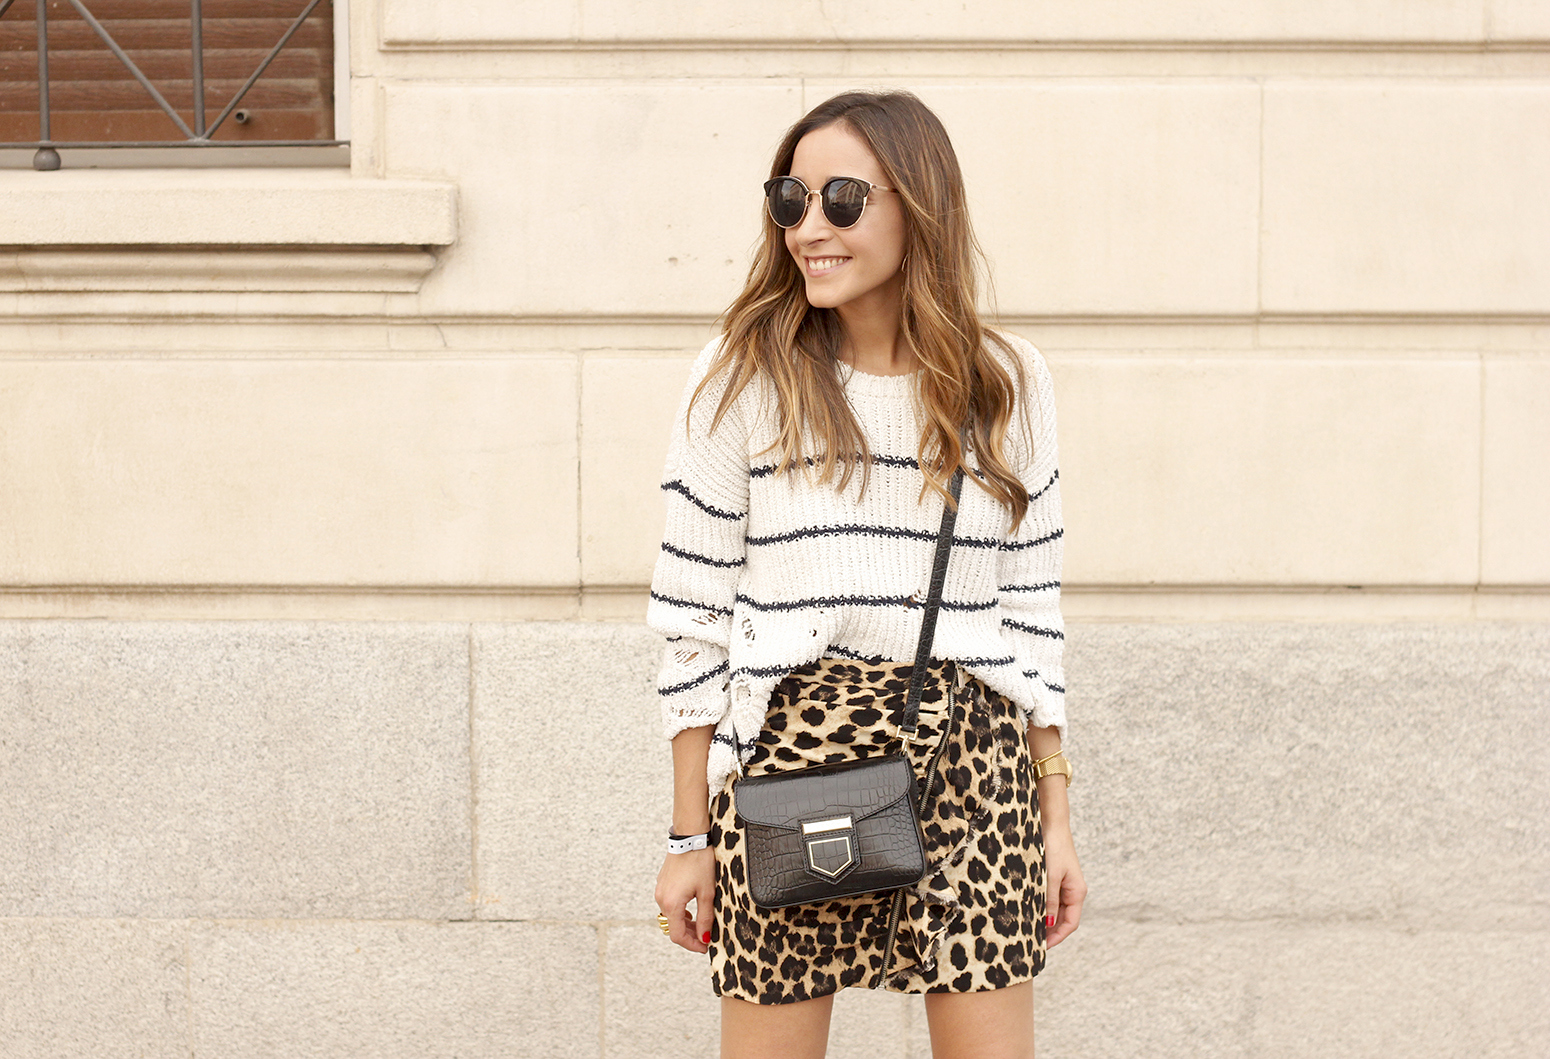 leopard printed skirt striped sweater givenchy bag outfit fashion style trend09